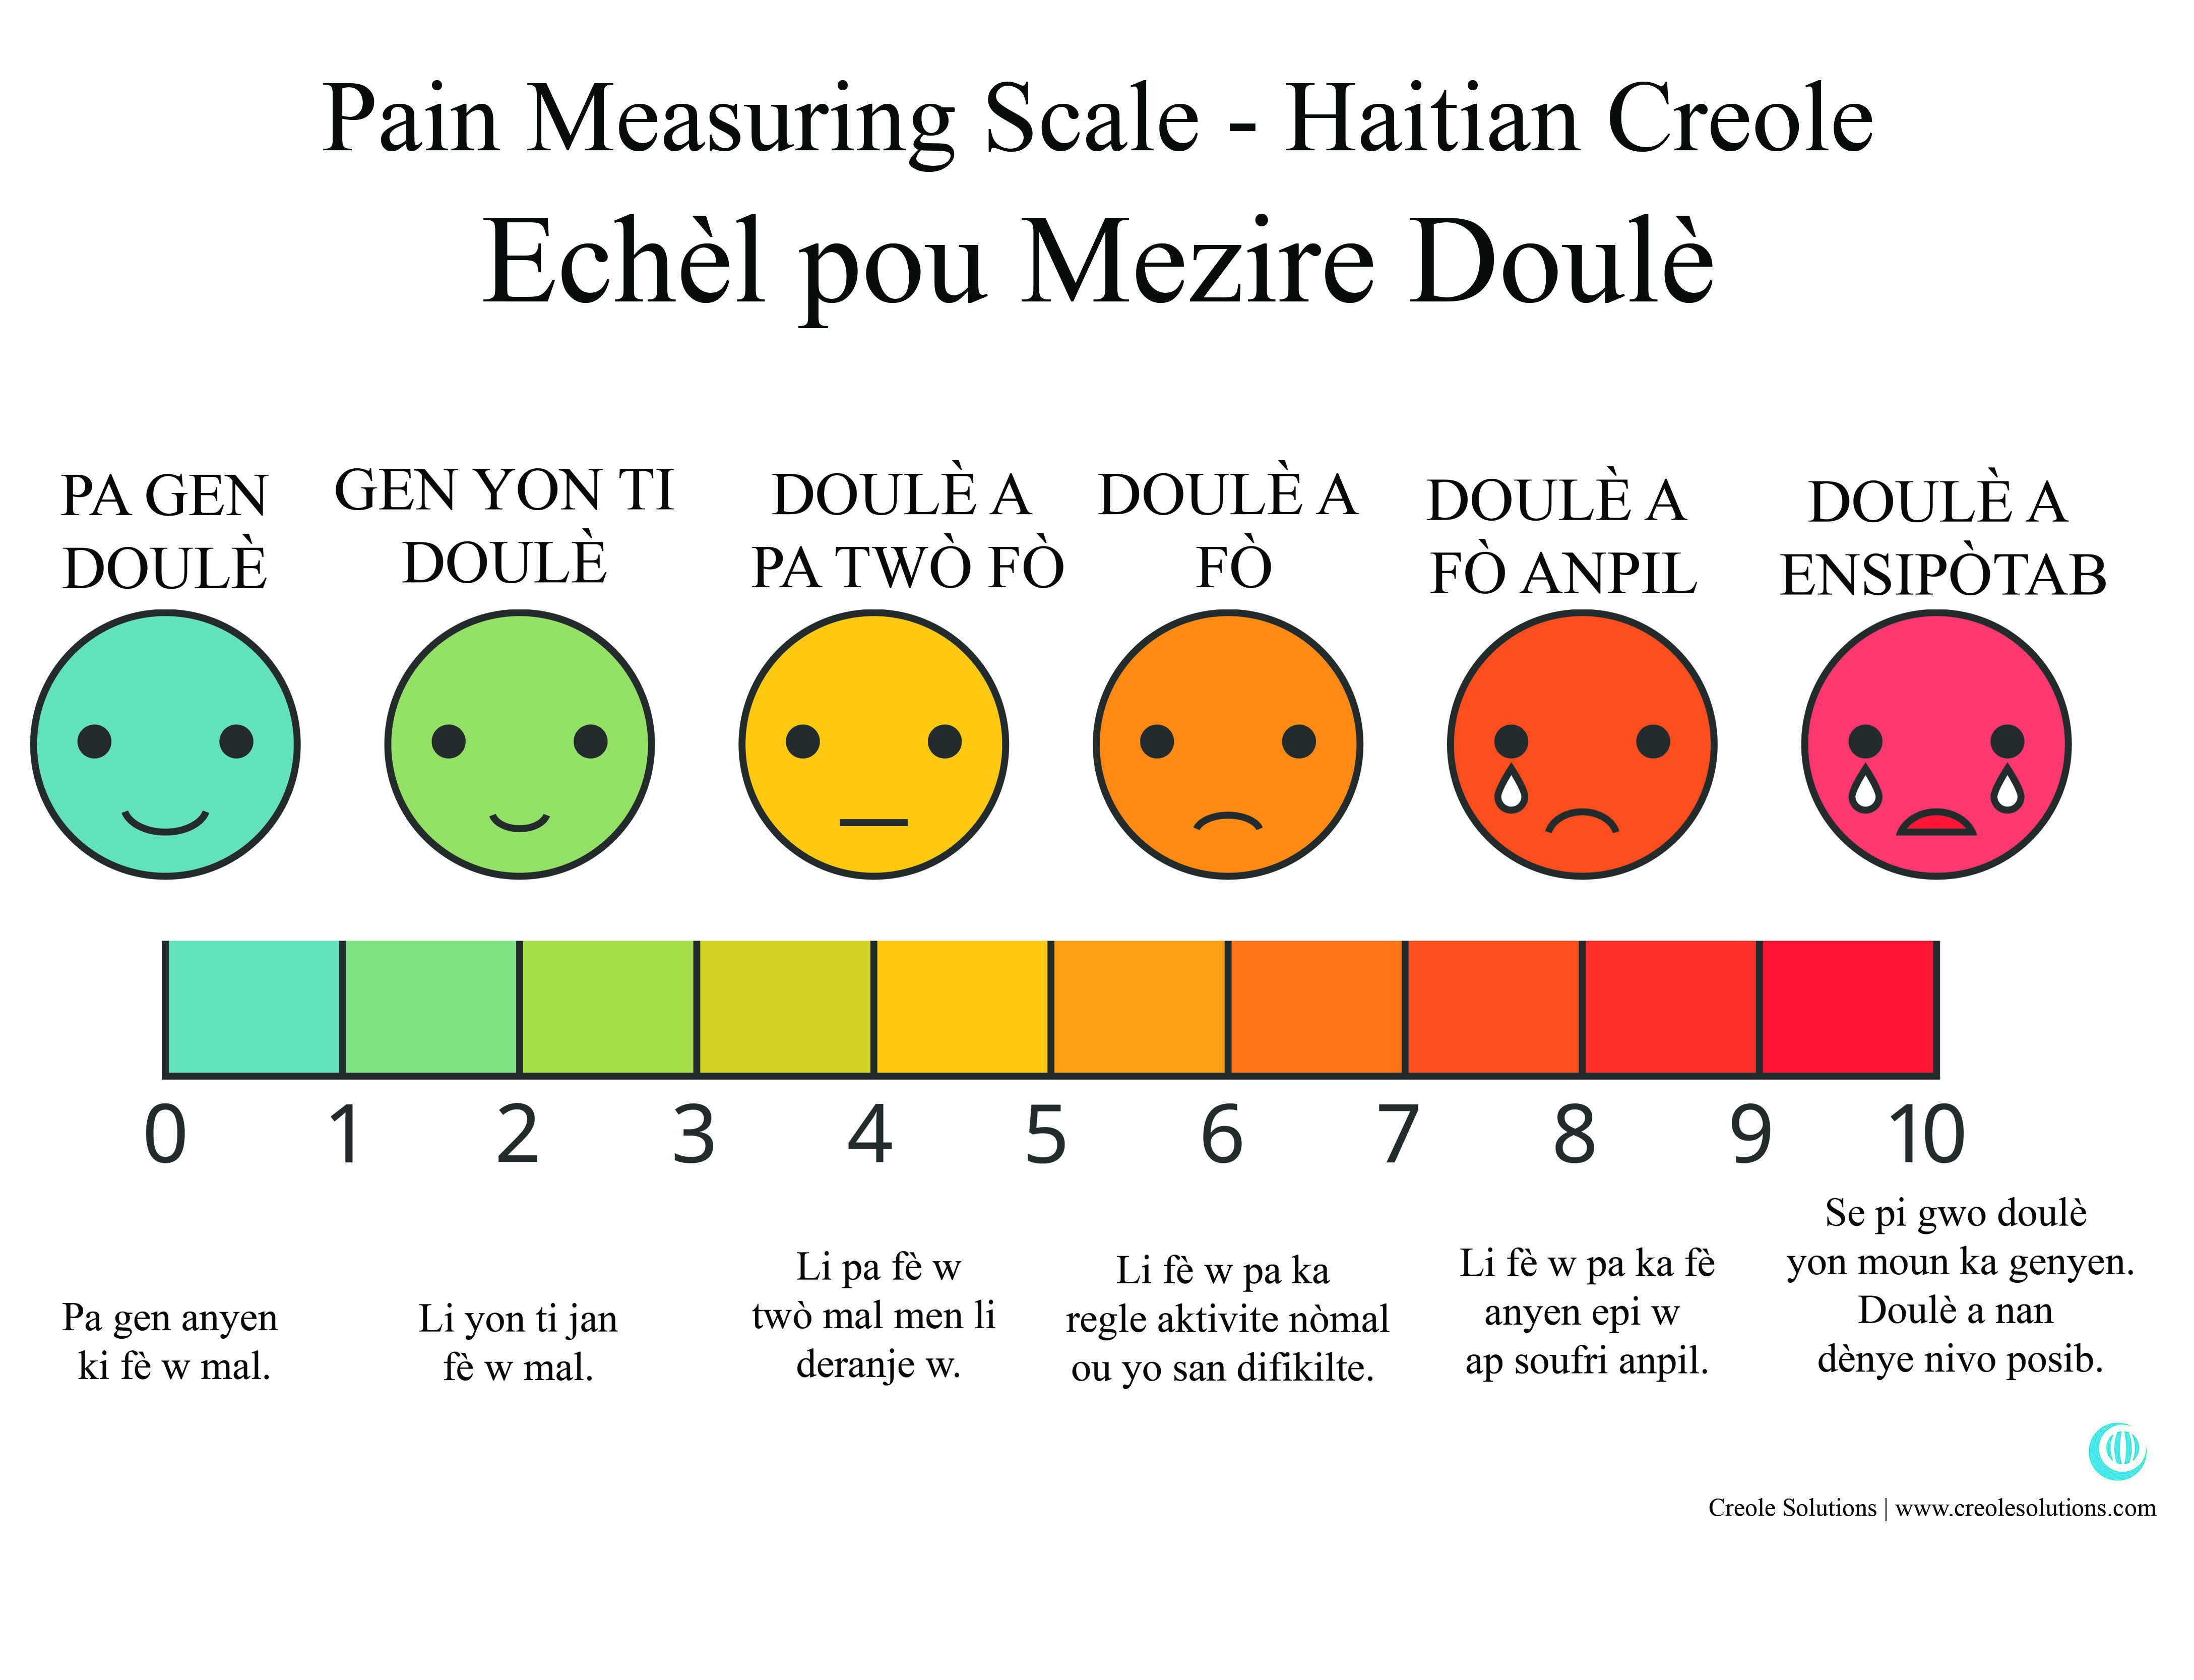 pain measuring scale in haitian creole [ 4353 x 3333 Pixel ]